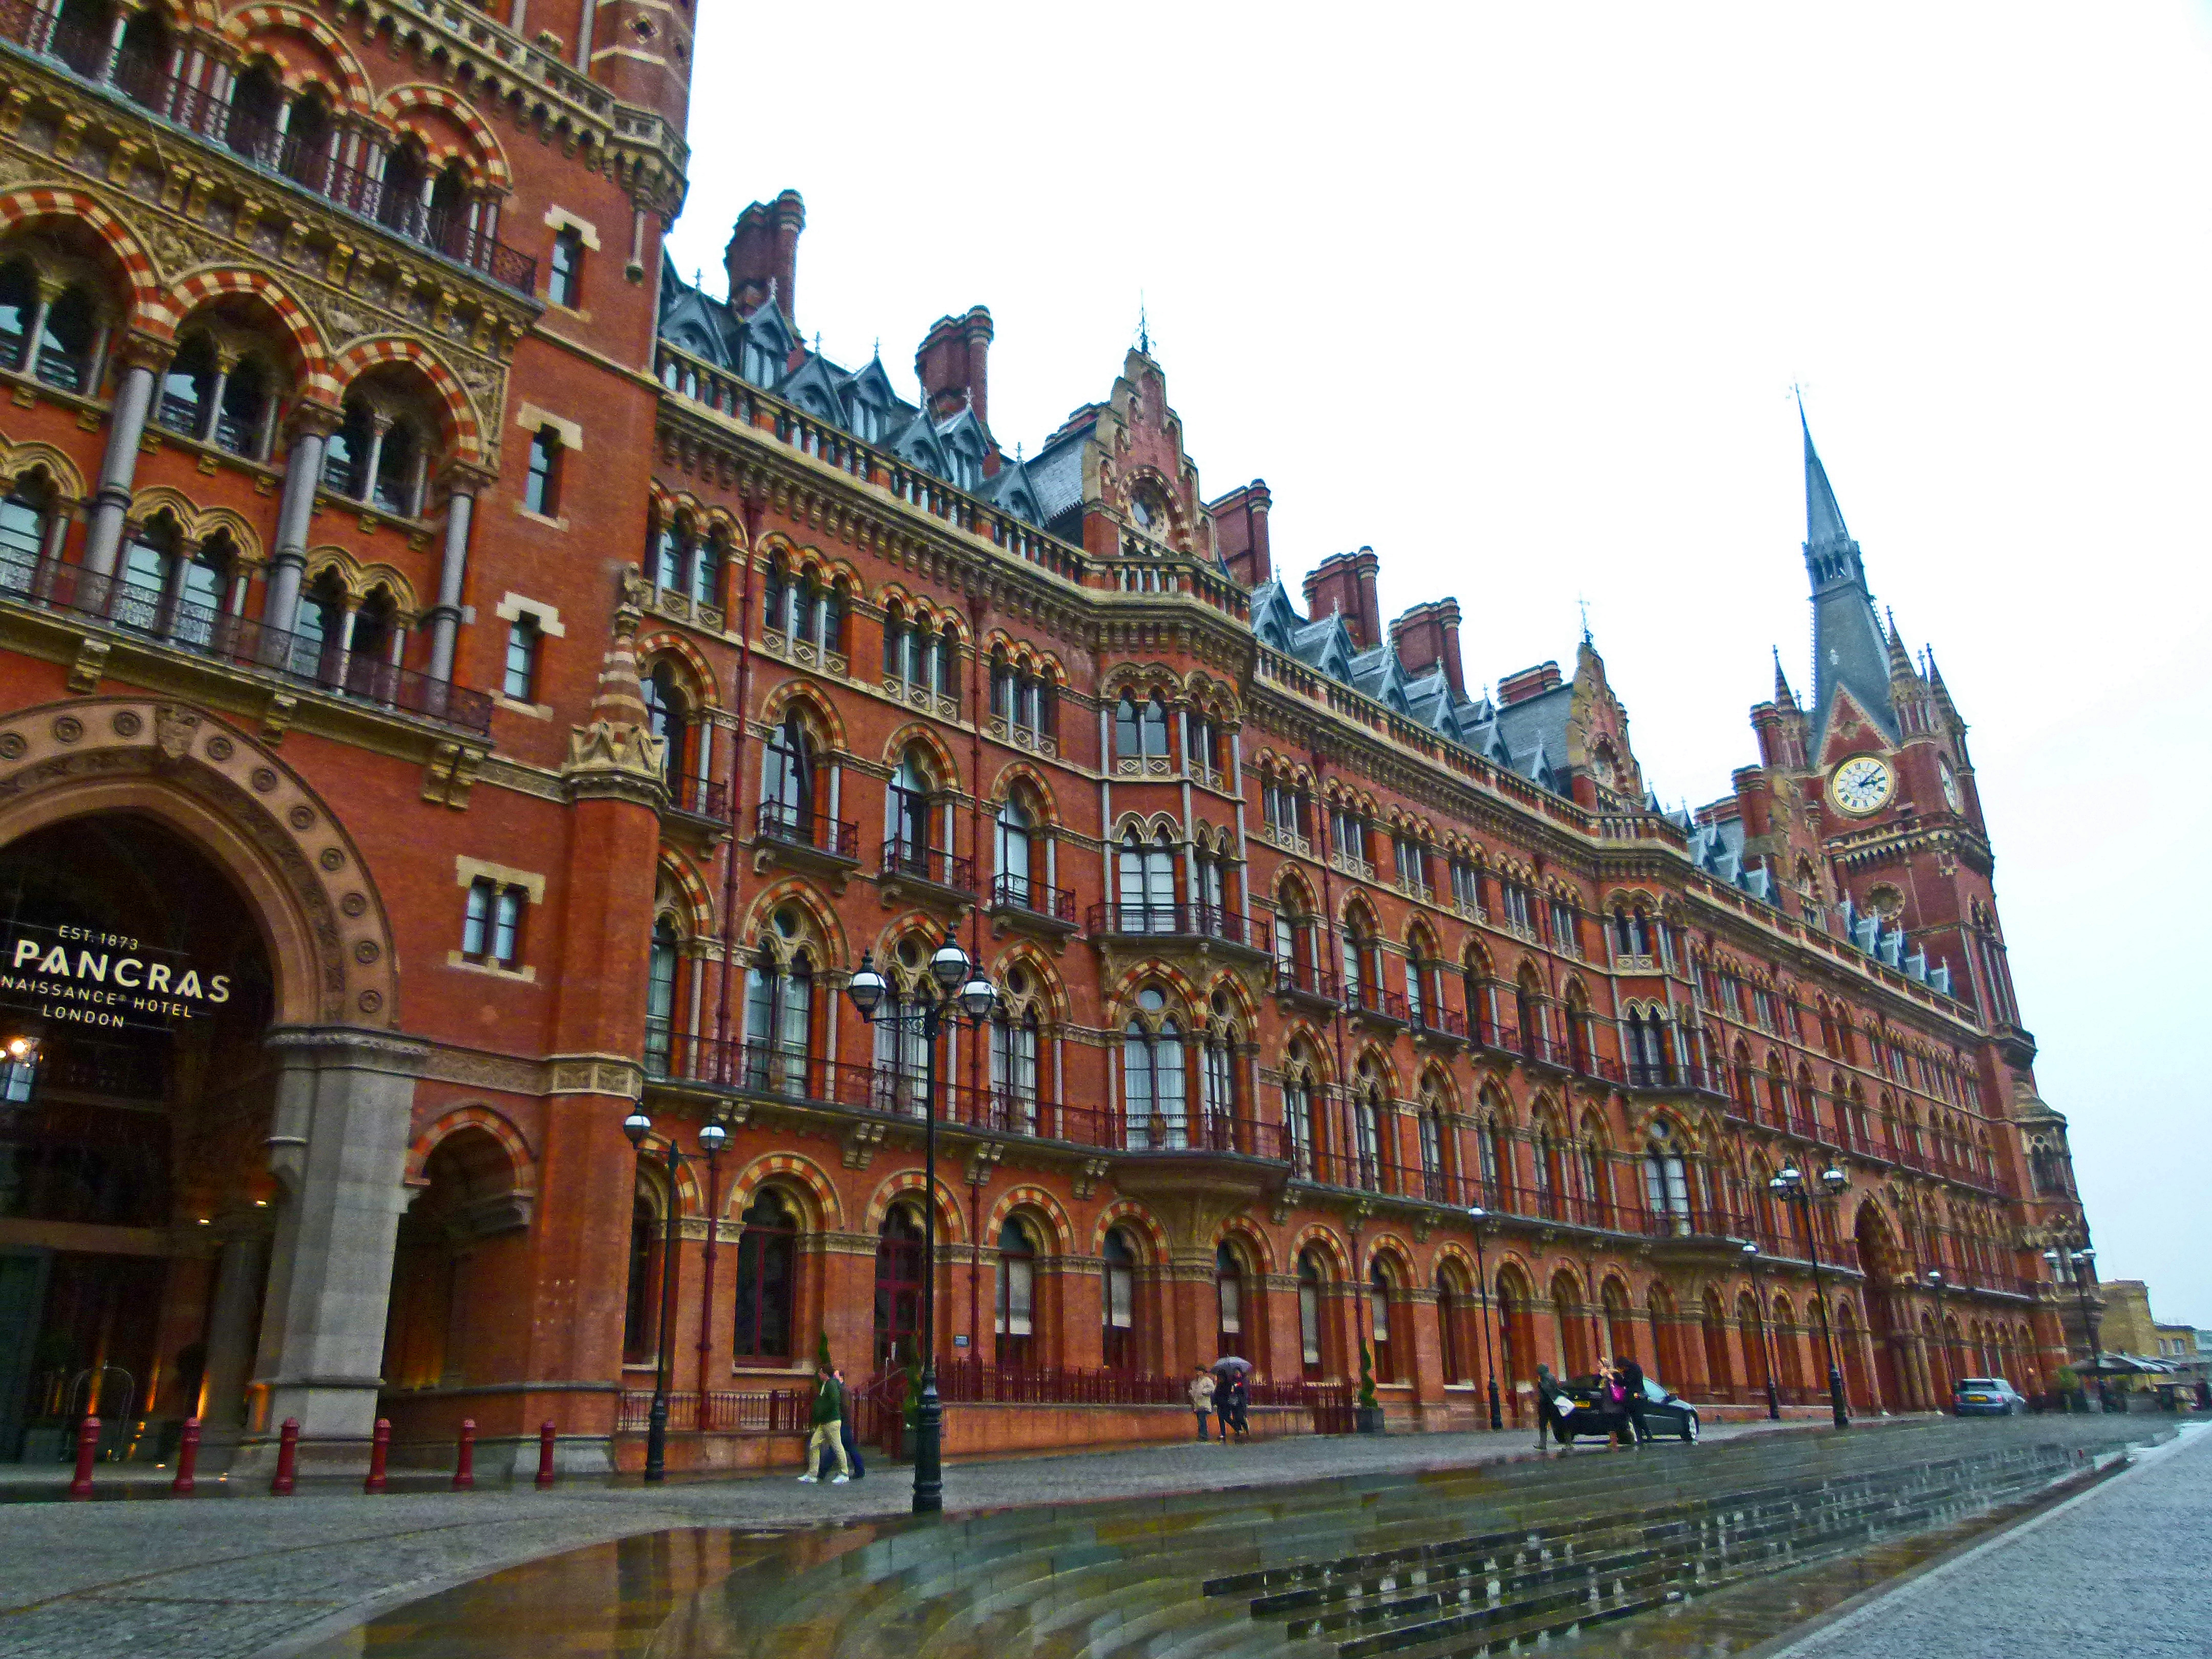 st pancras station chauffeur to southend 120. Black Bedroom Furniture Sets. Home Design Ideas